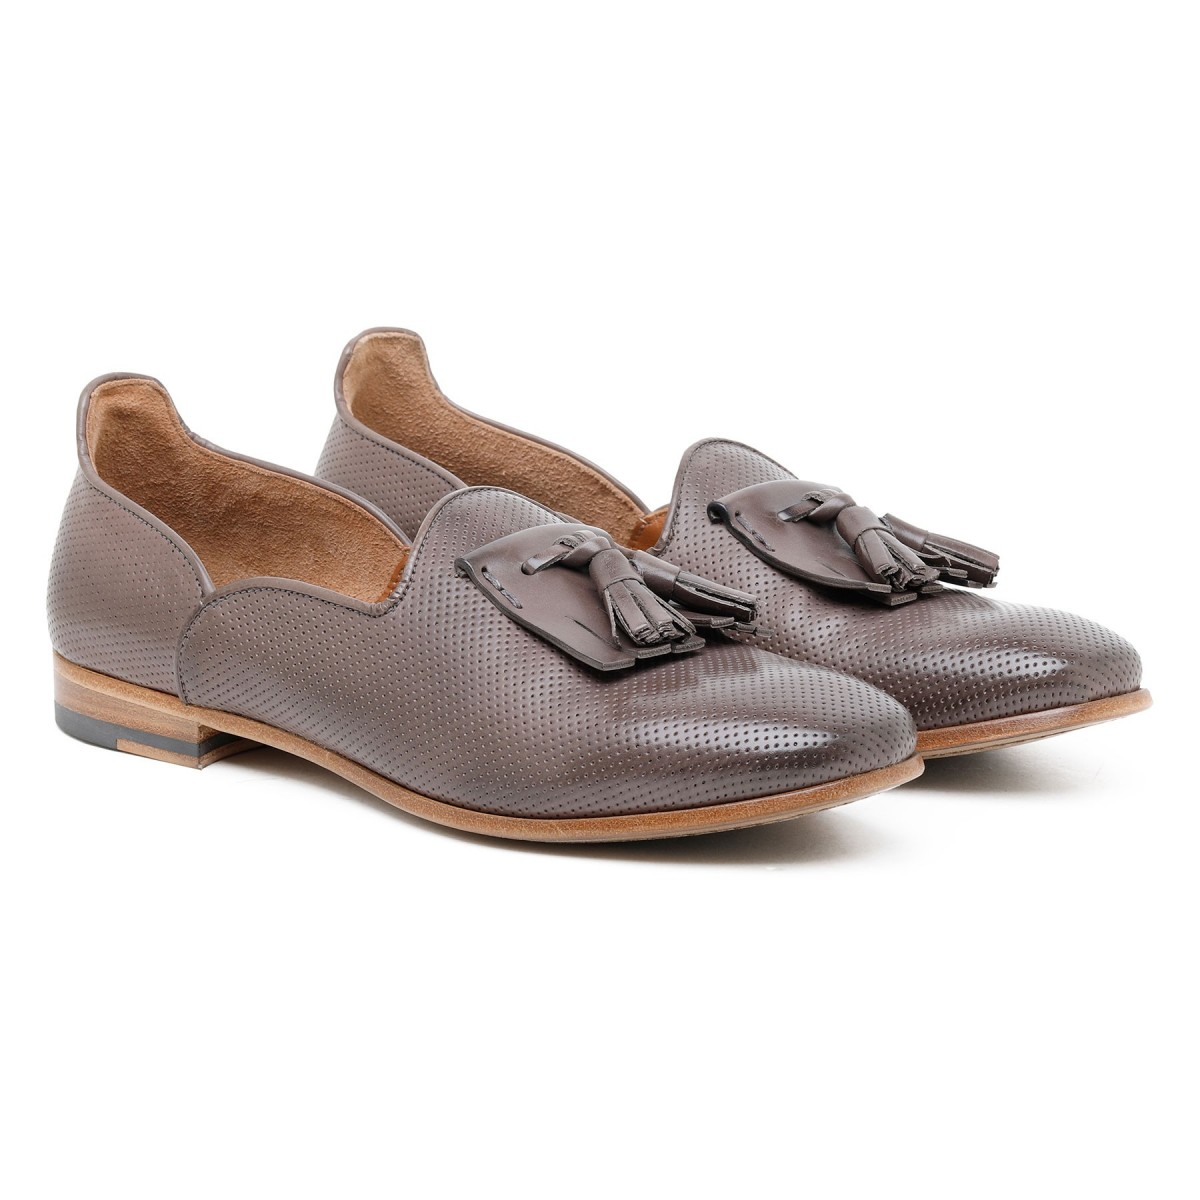 Tassels brown leather slippers